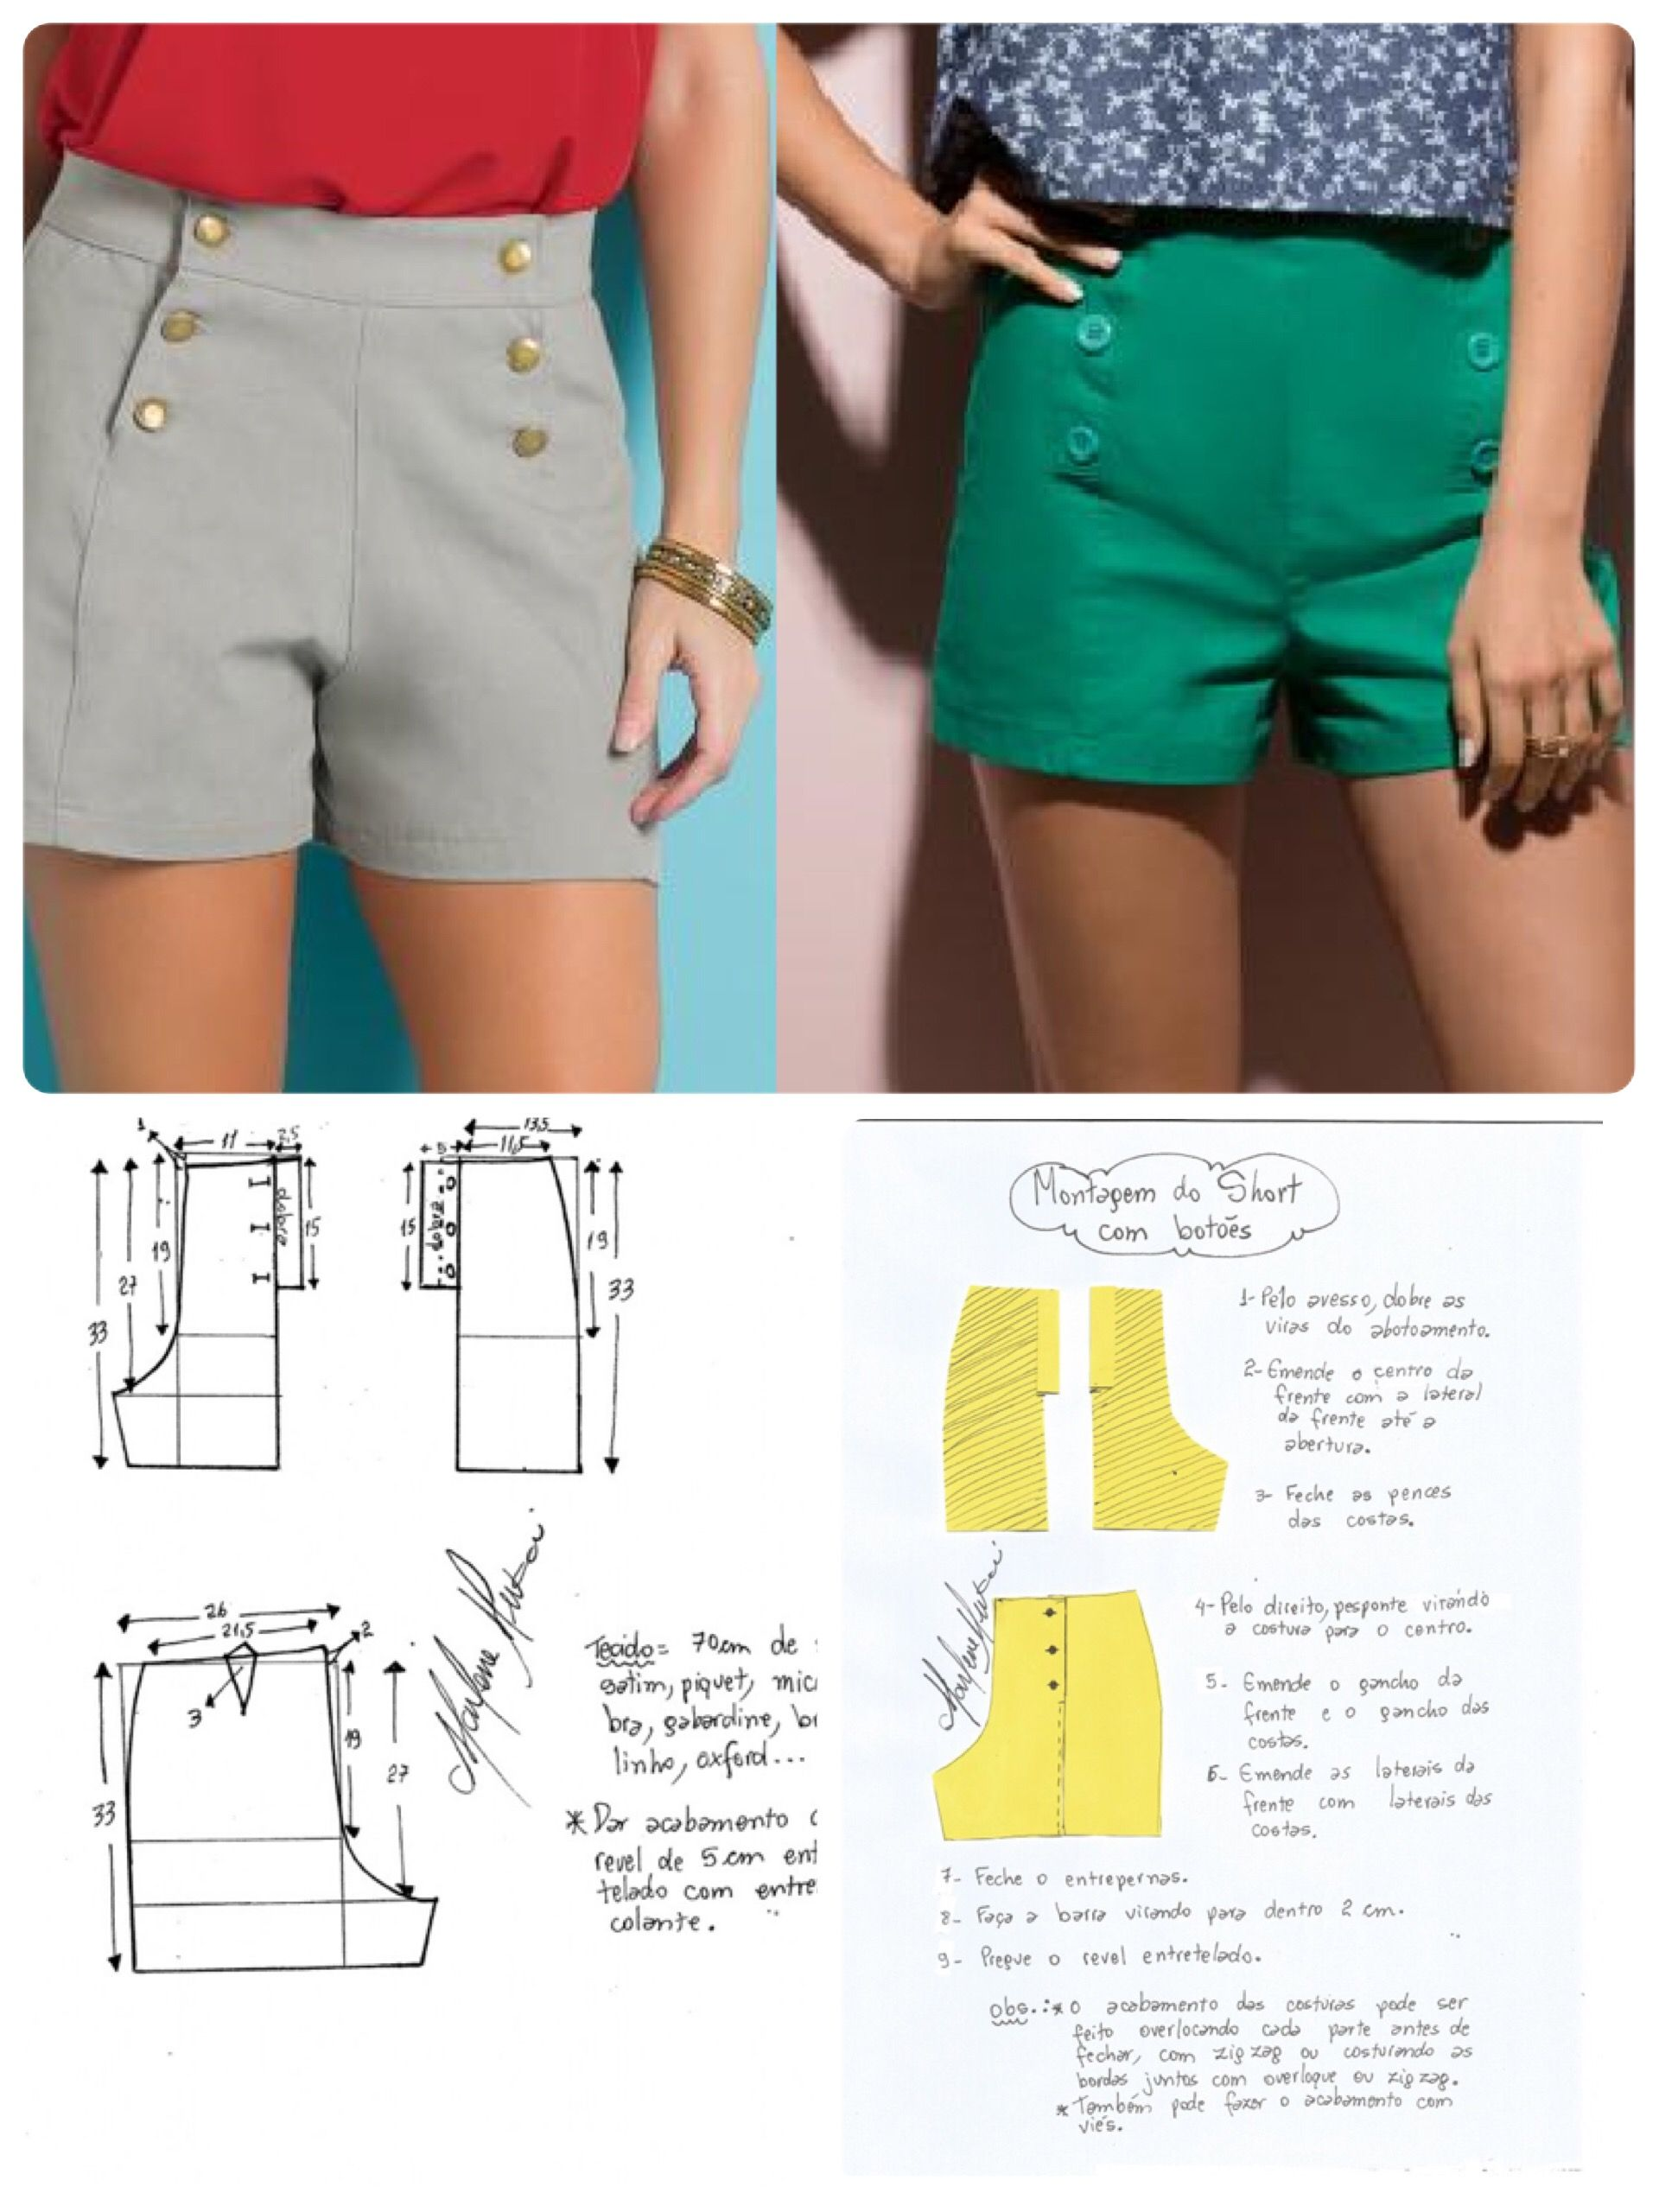 Hot pants pattern | llperez | Pinterest | Costura, Molde y Patrones